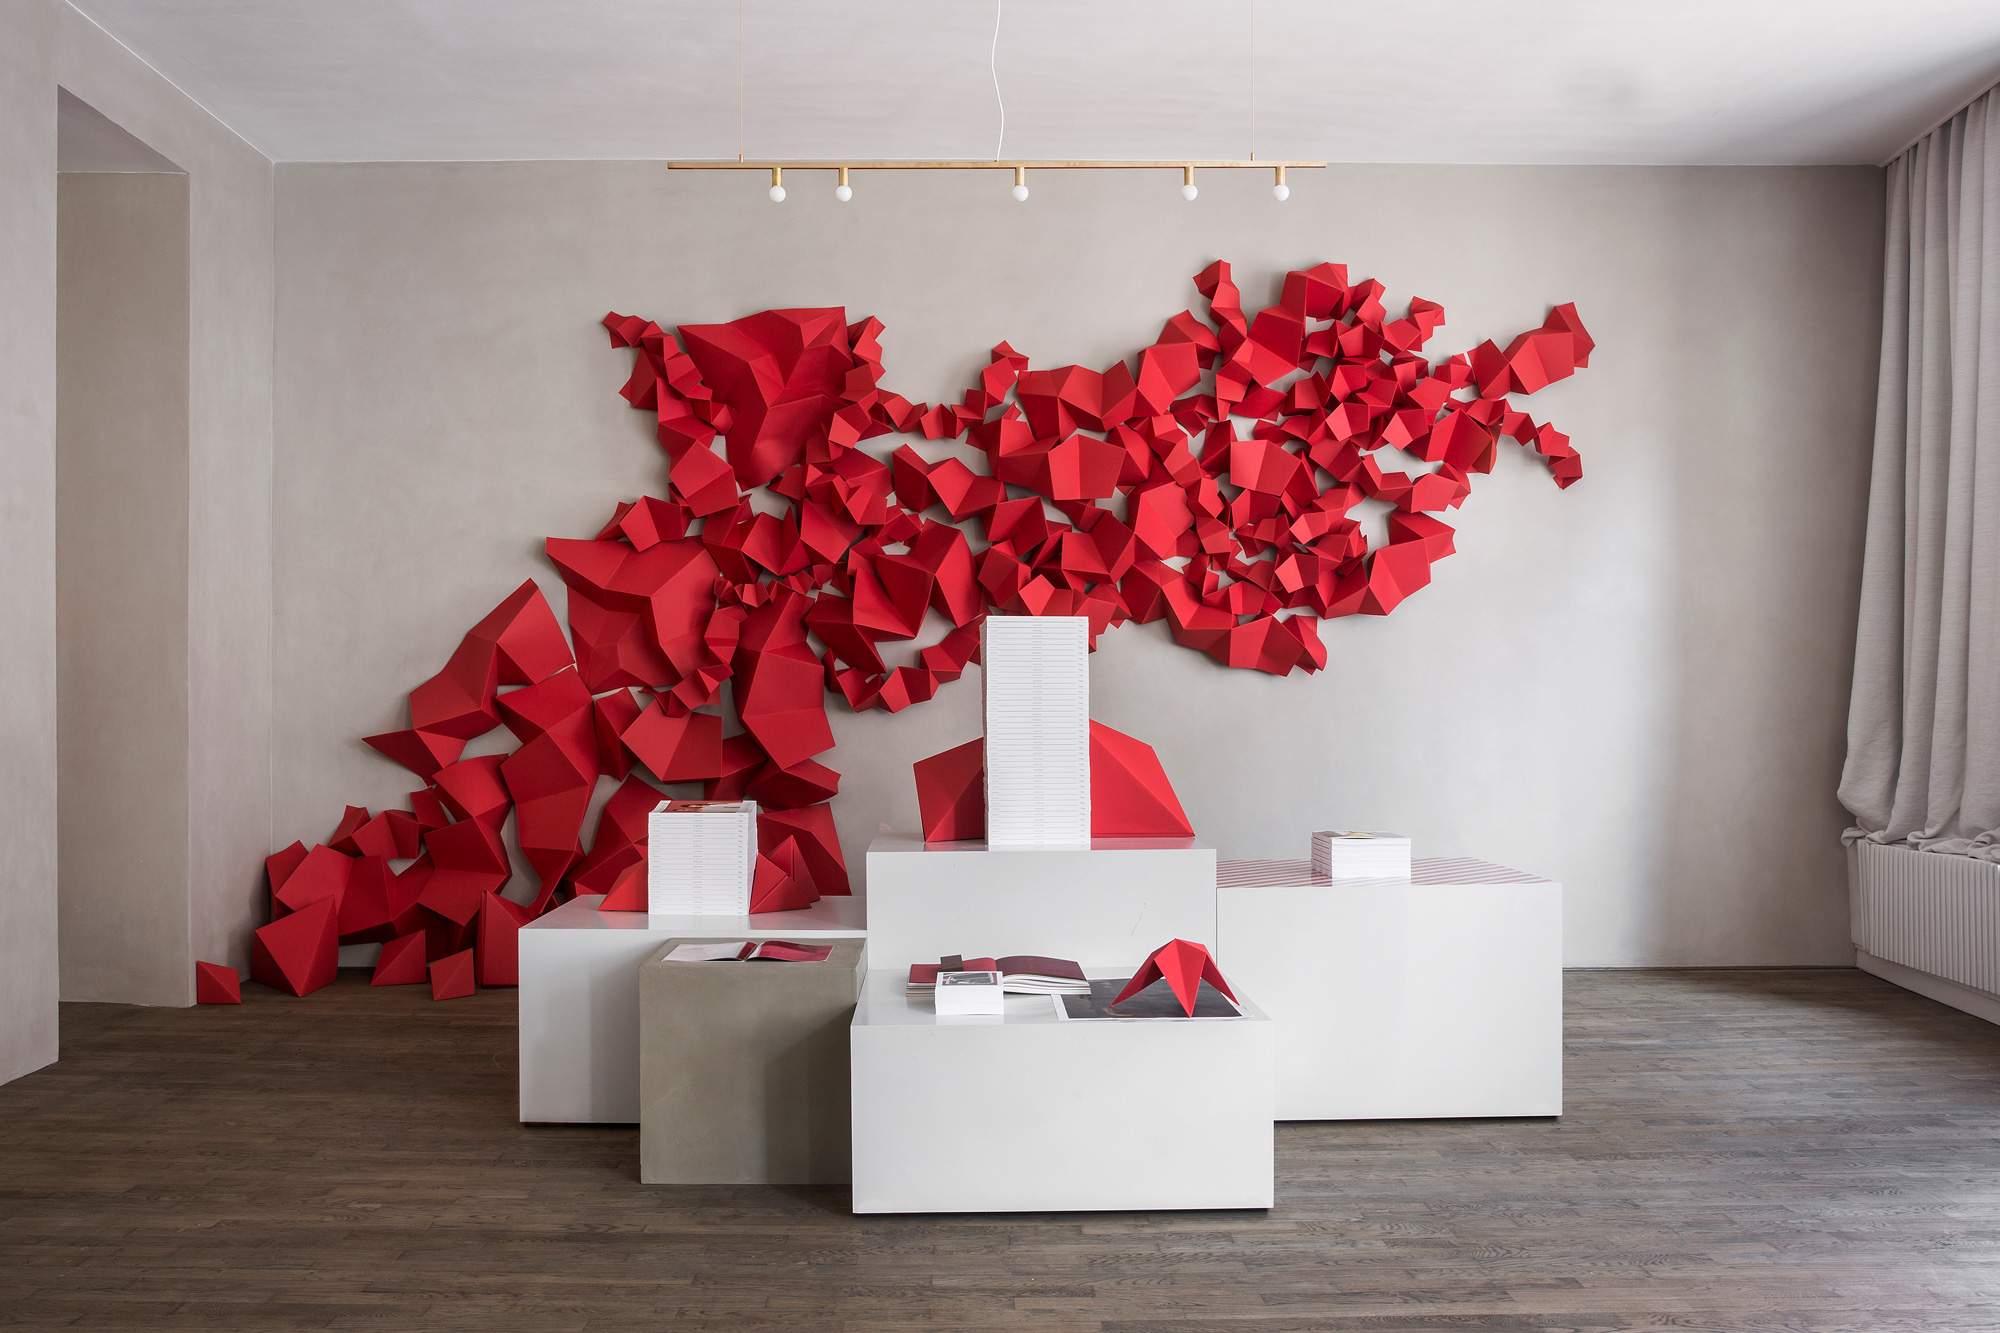 kinfolk_theredsocial_installation01.jpg